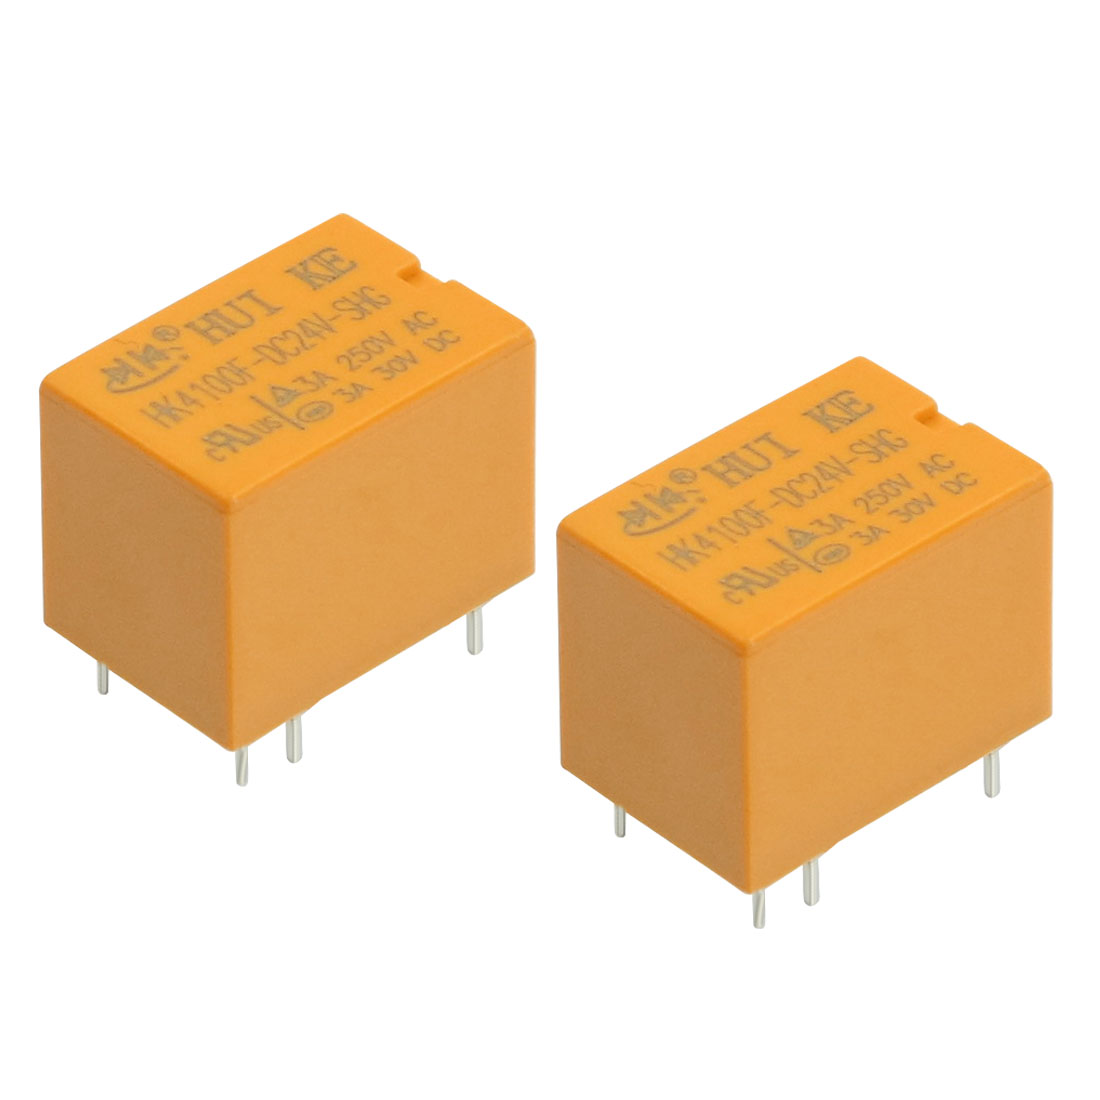 2 Pcs HK4100F-DC24V-SHG DC 24V Coil SPDT 6 Pin PCB General Purpose Power Relay